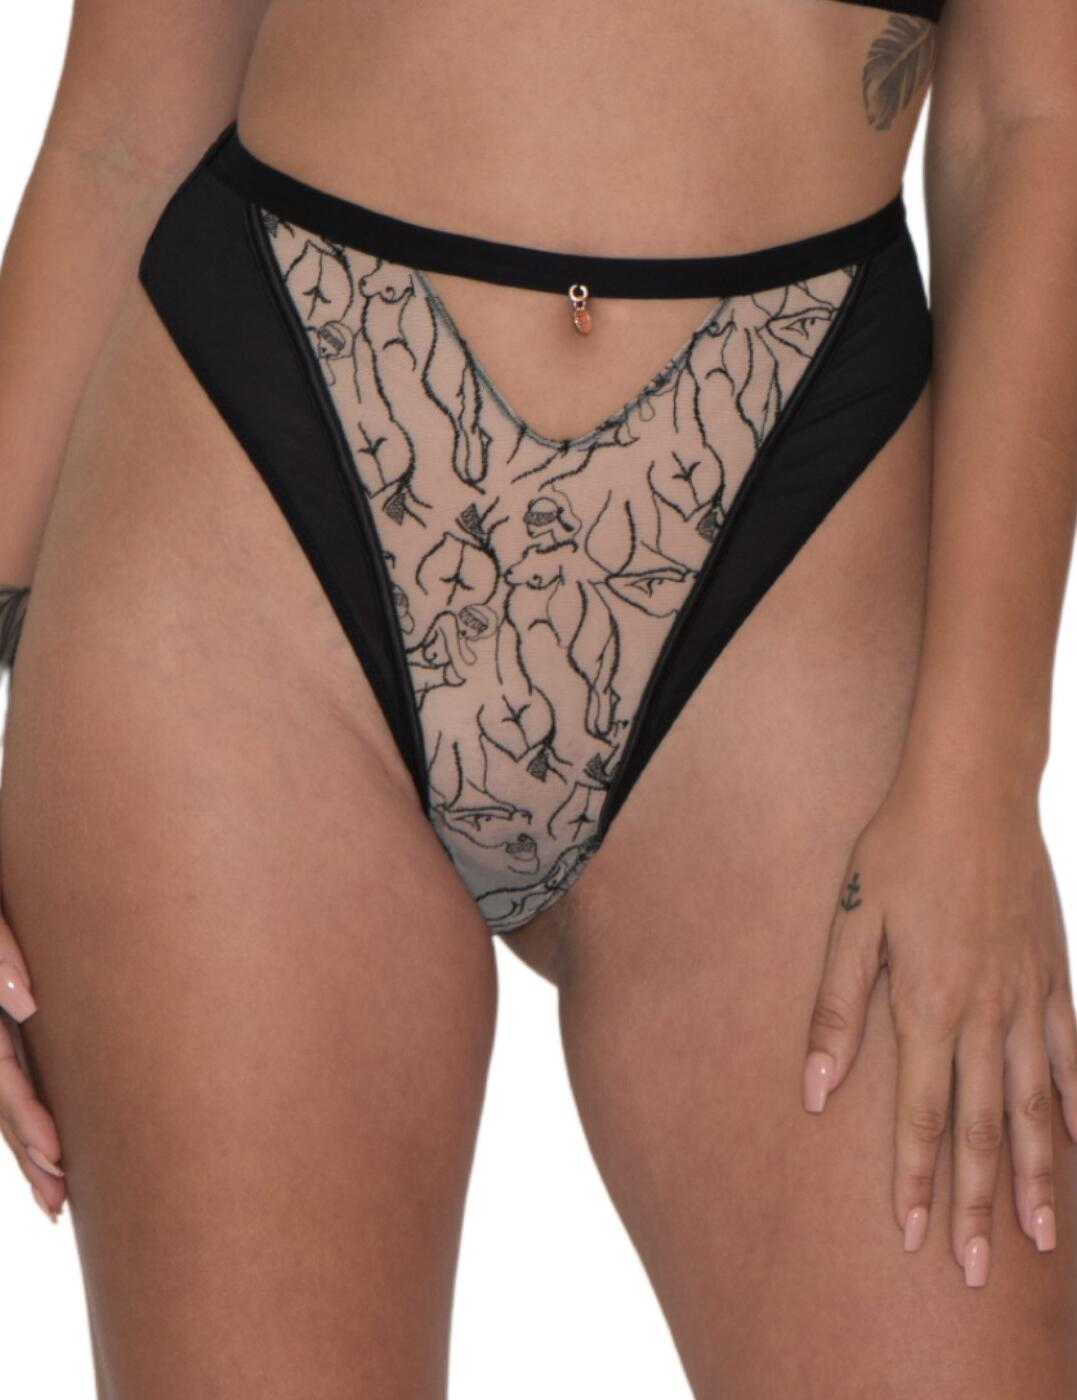 Scantilly by Curvy Kate Sex Education High Waist Thong Black/Latte